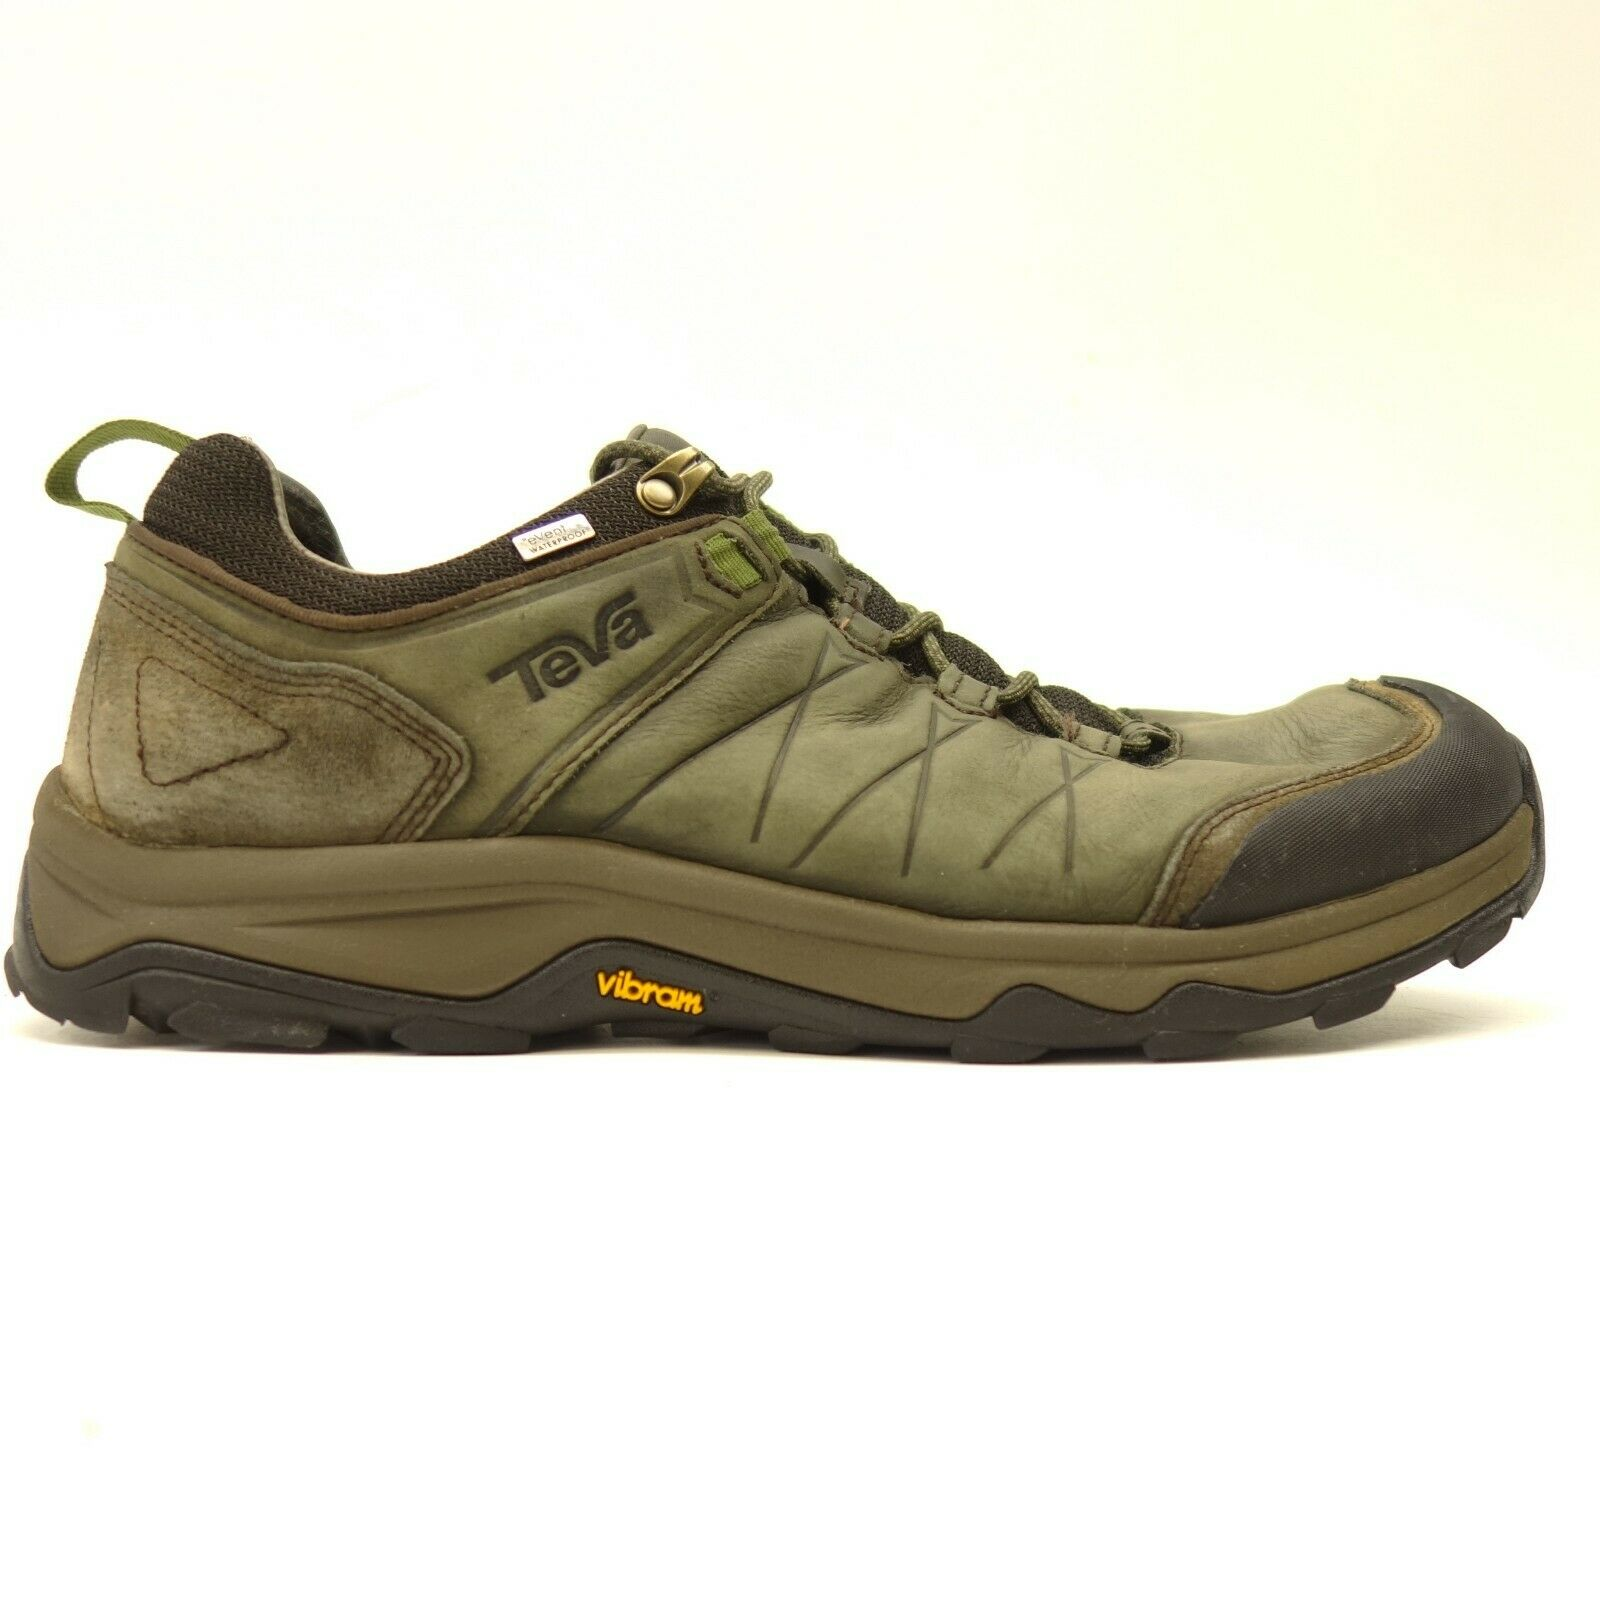 Teva Arrowood Riva US 12 eVent Waterproof Athletic Hiking Trail Mens shoes